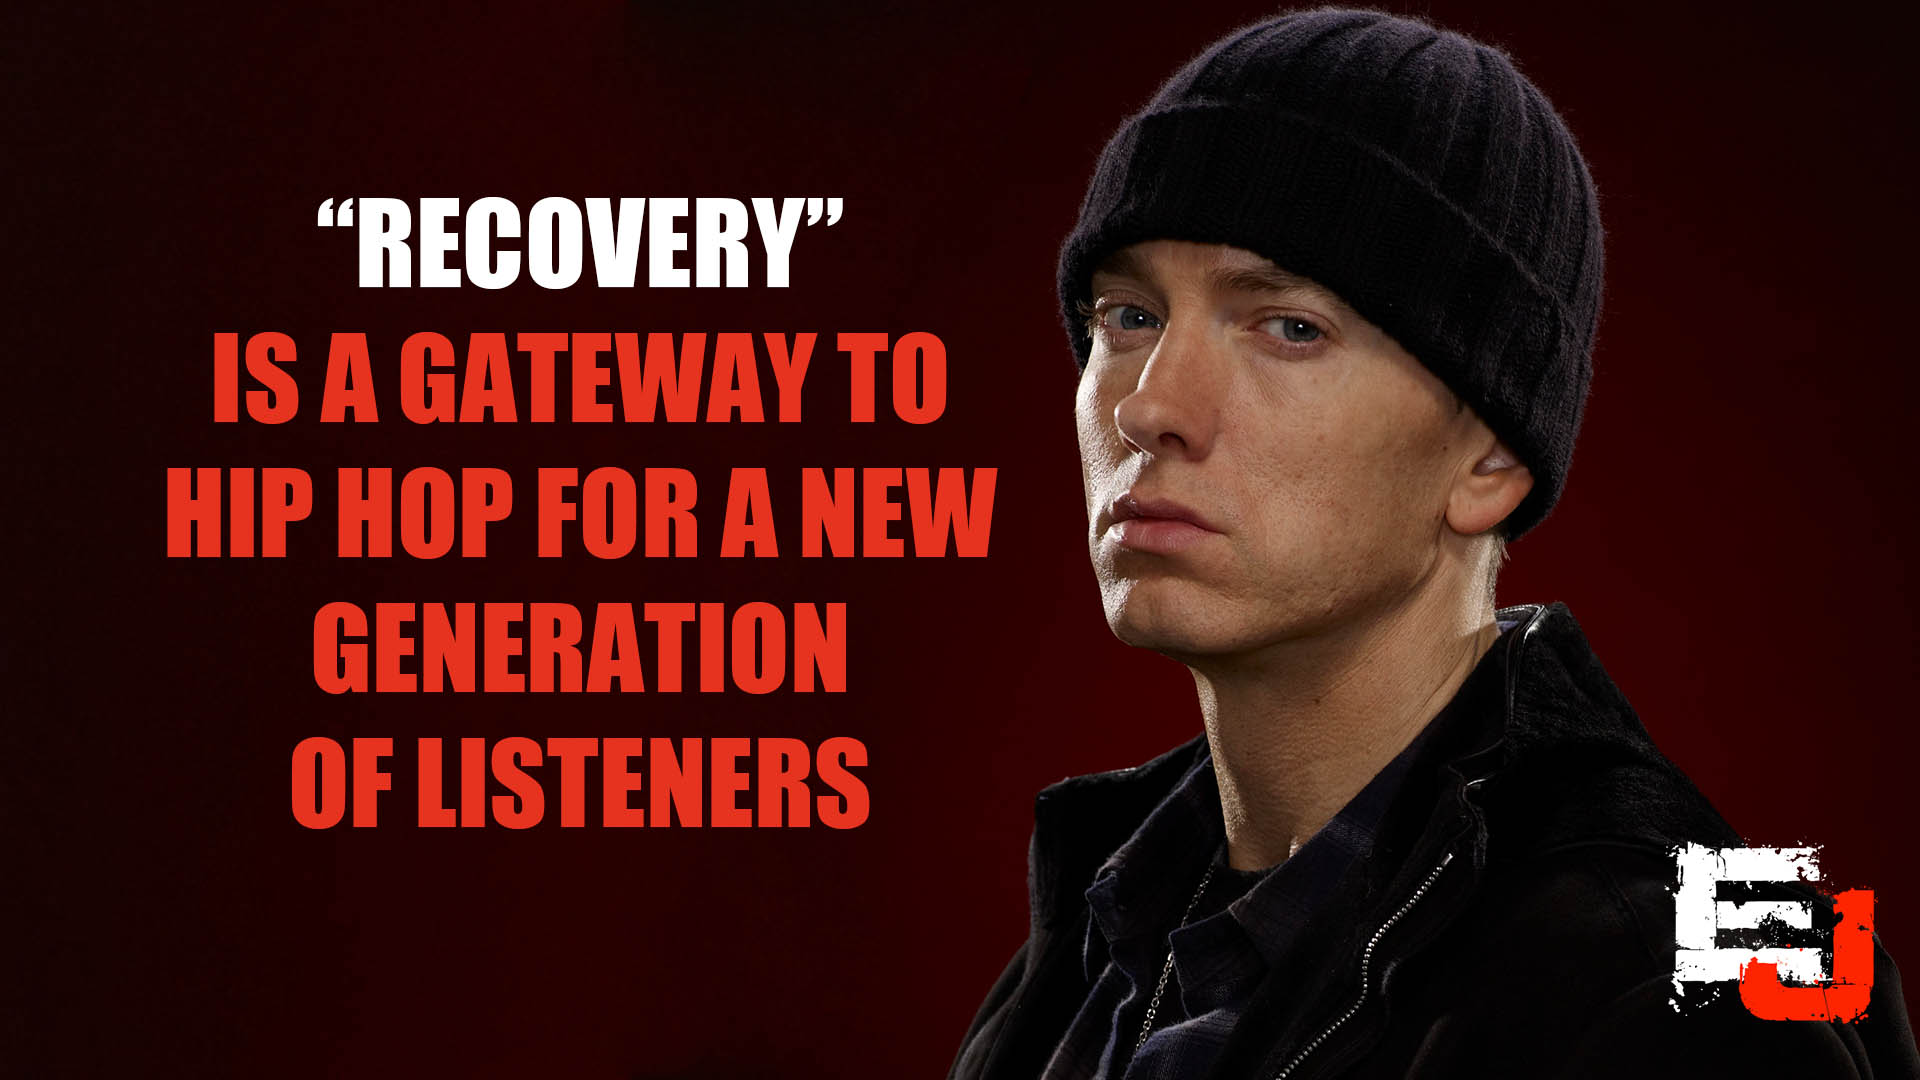 """Recovery"" Is A Gateway To Hip Hop For A New Generation Of Listeners"